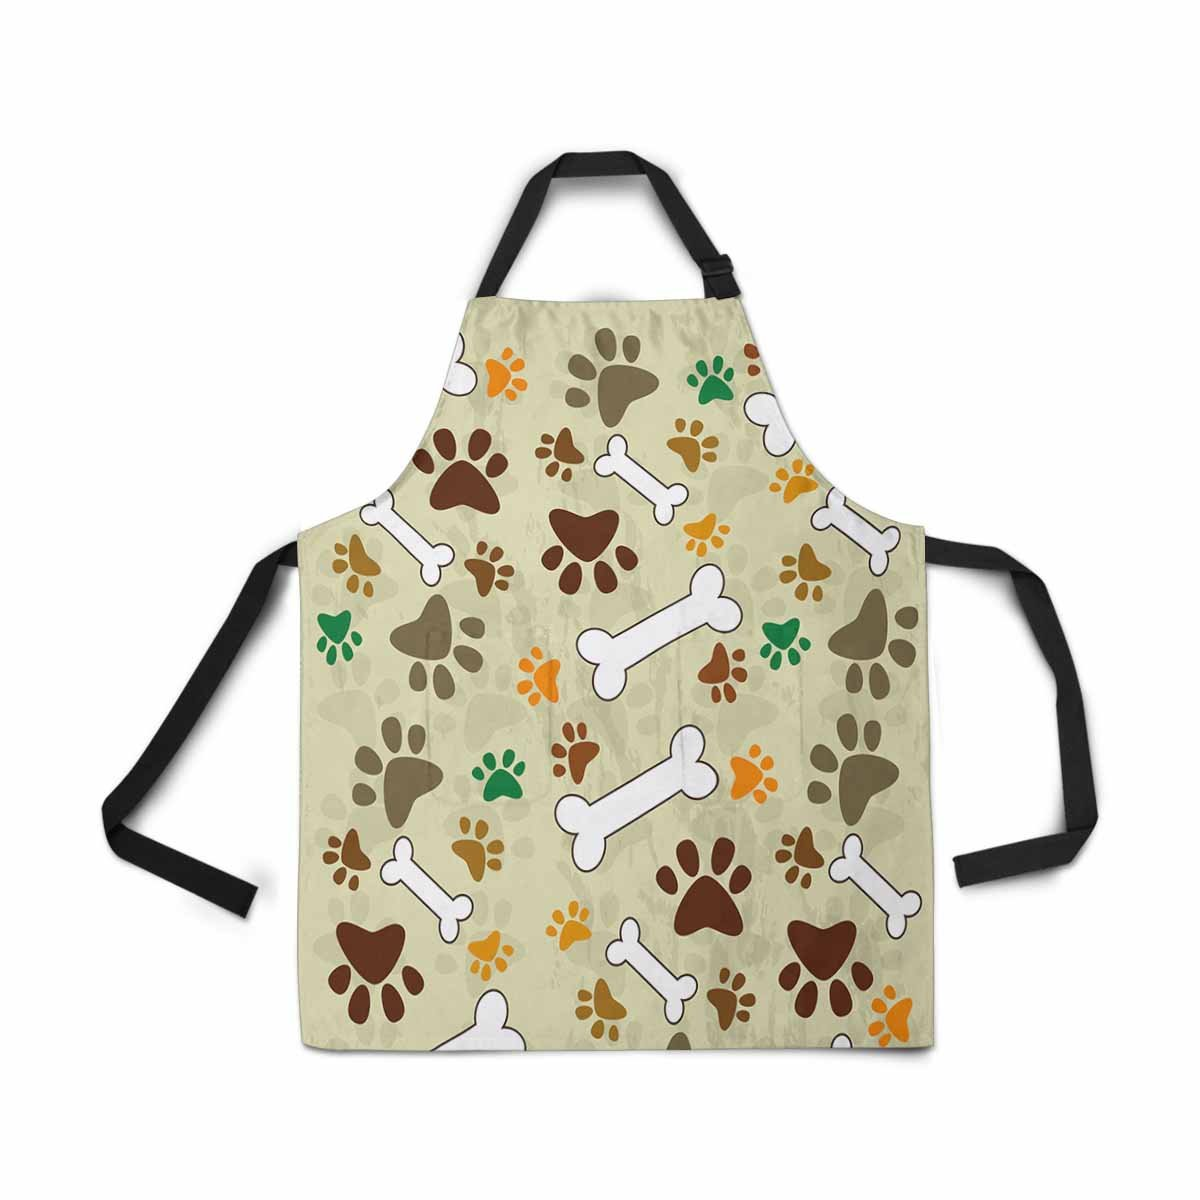 InterestPrint Adjustable Bib Apron for Women Men Girls Chef with Pockets, Dog Paws Bone Pug Print Animal Paws Novelty Kitchen Apron for Cooking Baking Gardening Pet Grooming Cleaning by InterestPrint